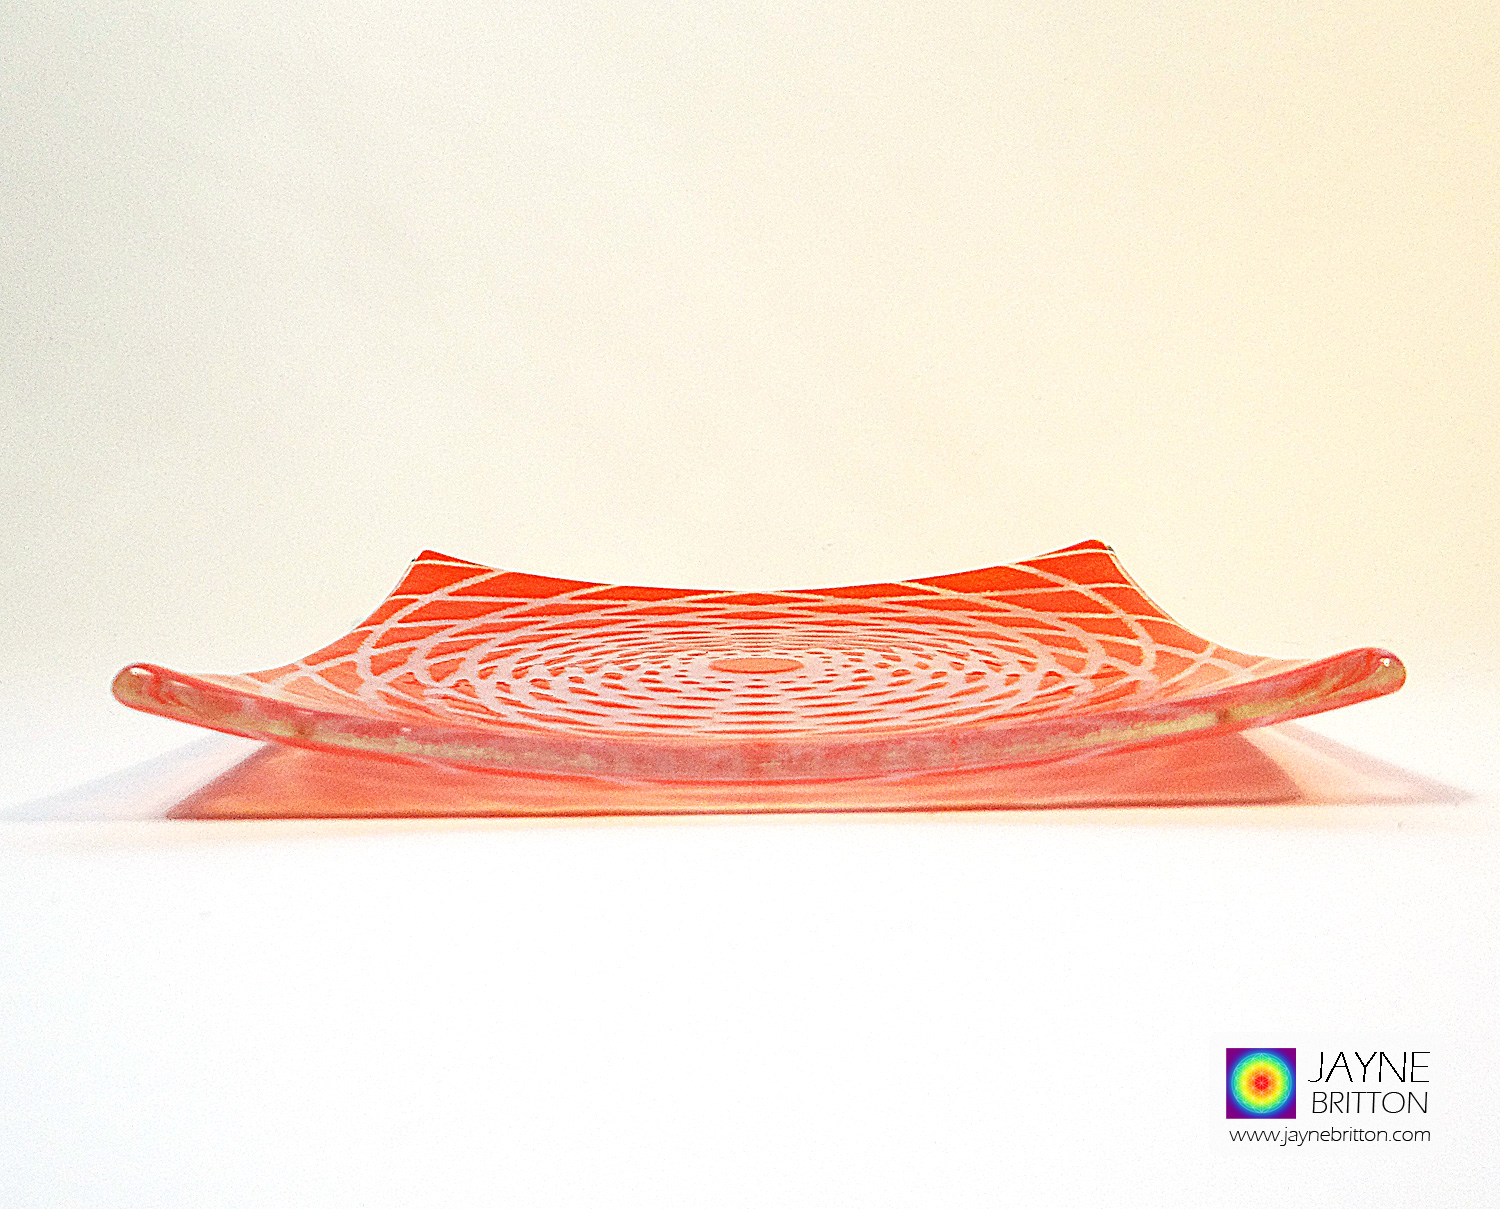 Fibonnacci spiral fused glass plate - orange